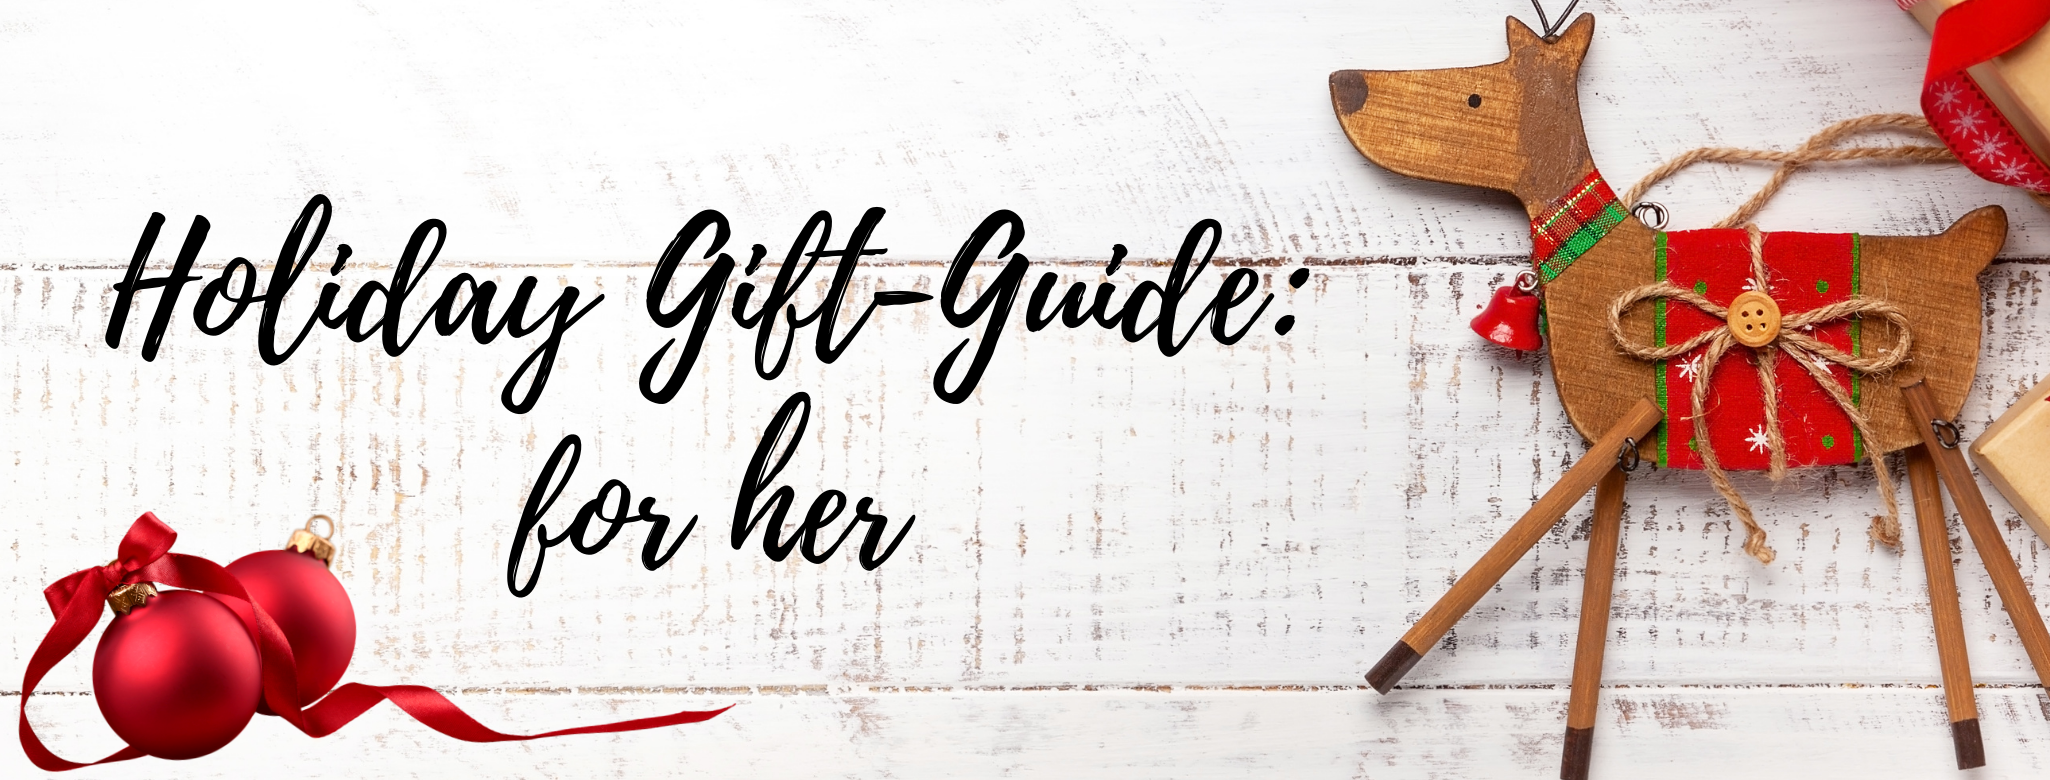 HOLIDAY GIFT-GUIDE: FOR HER